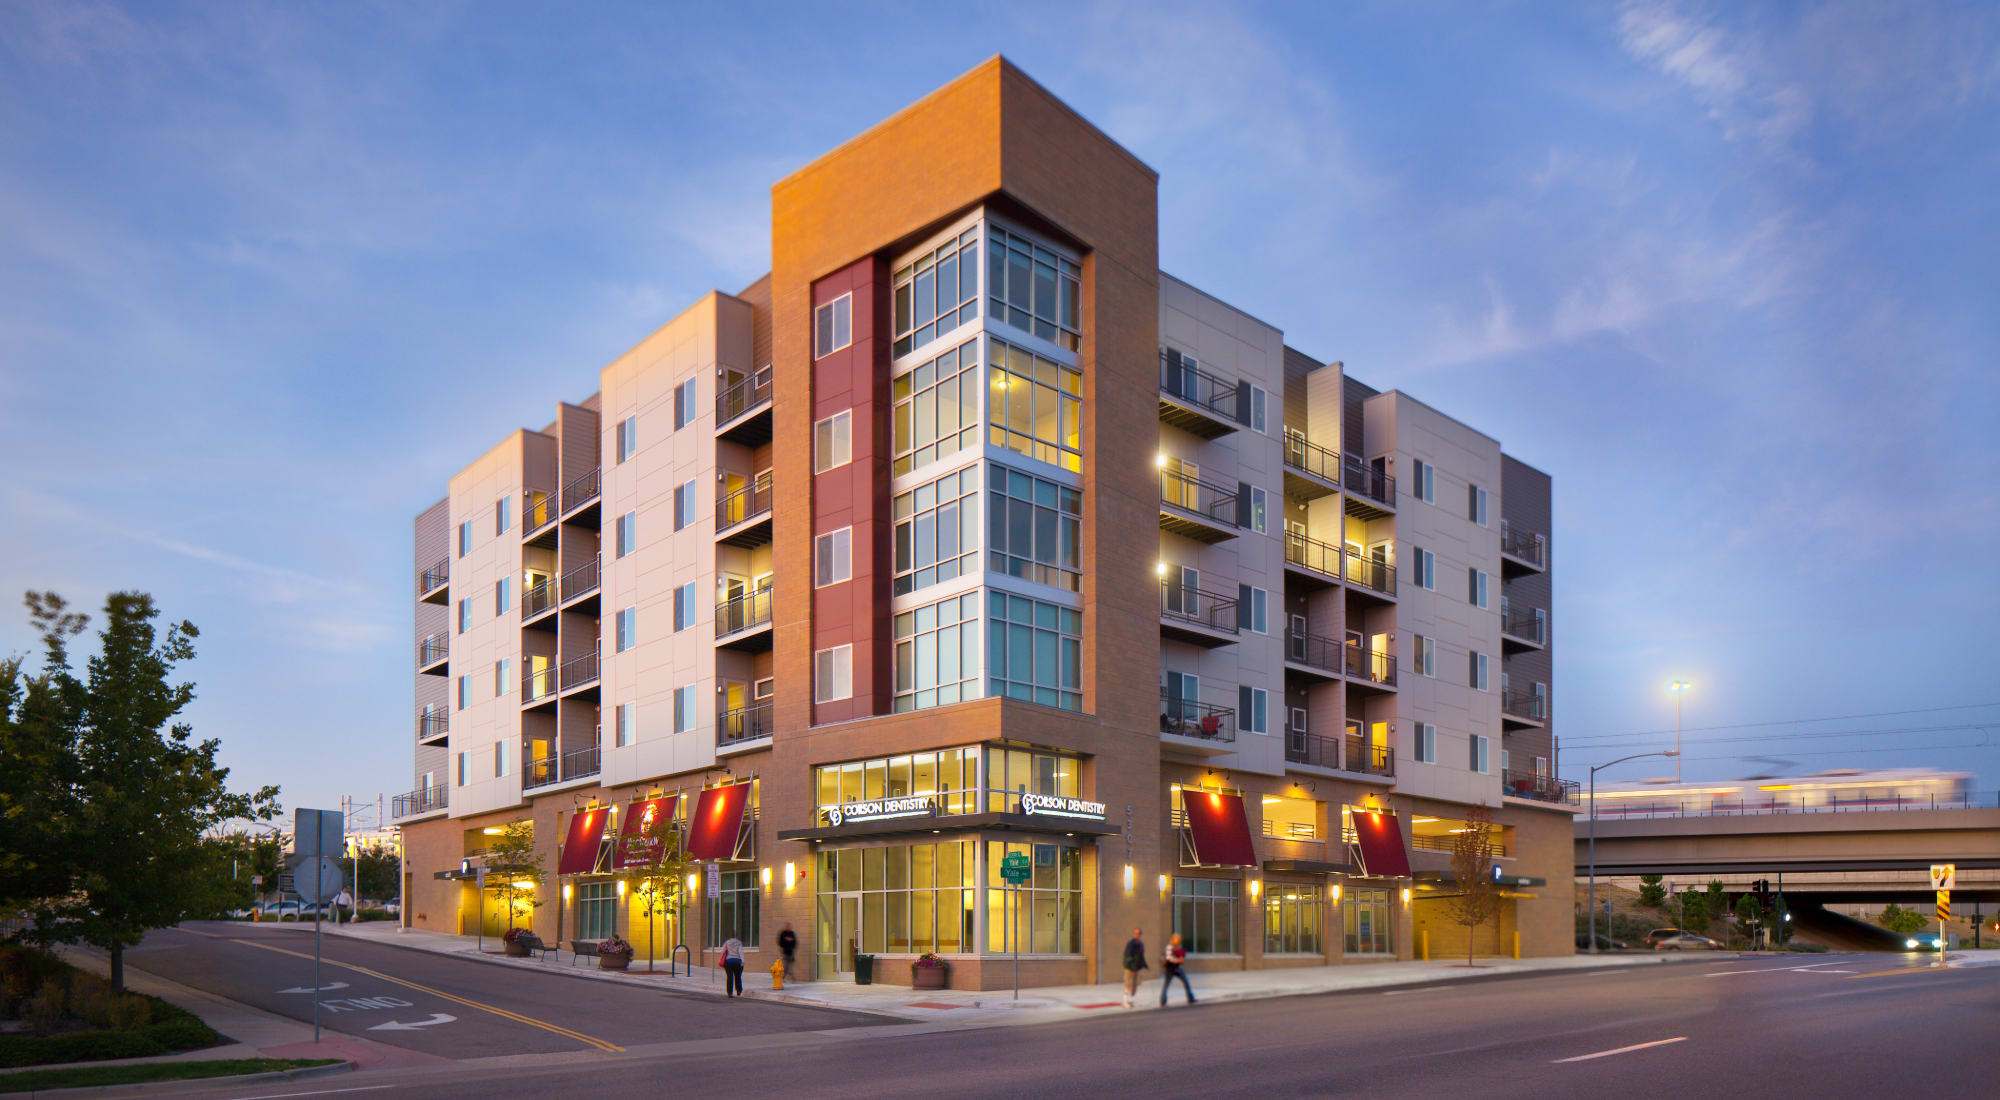 Beautiful exterior shot of the building at Yale Station Apartments in Denver, Colorado